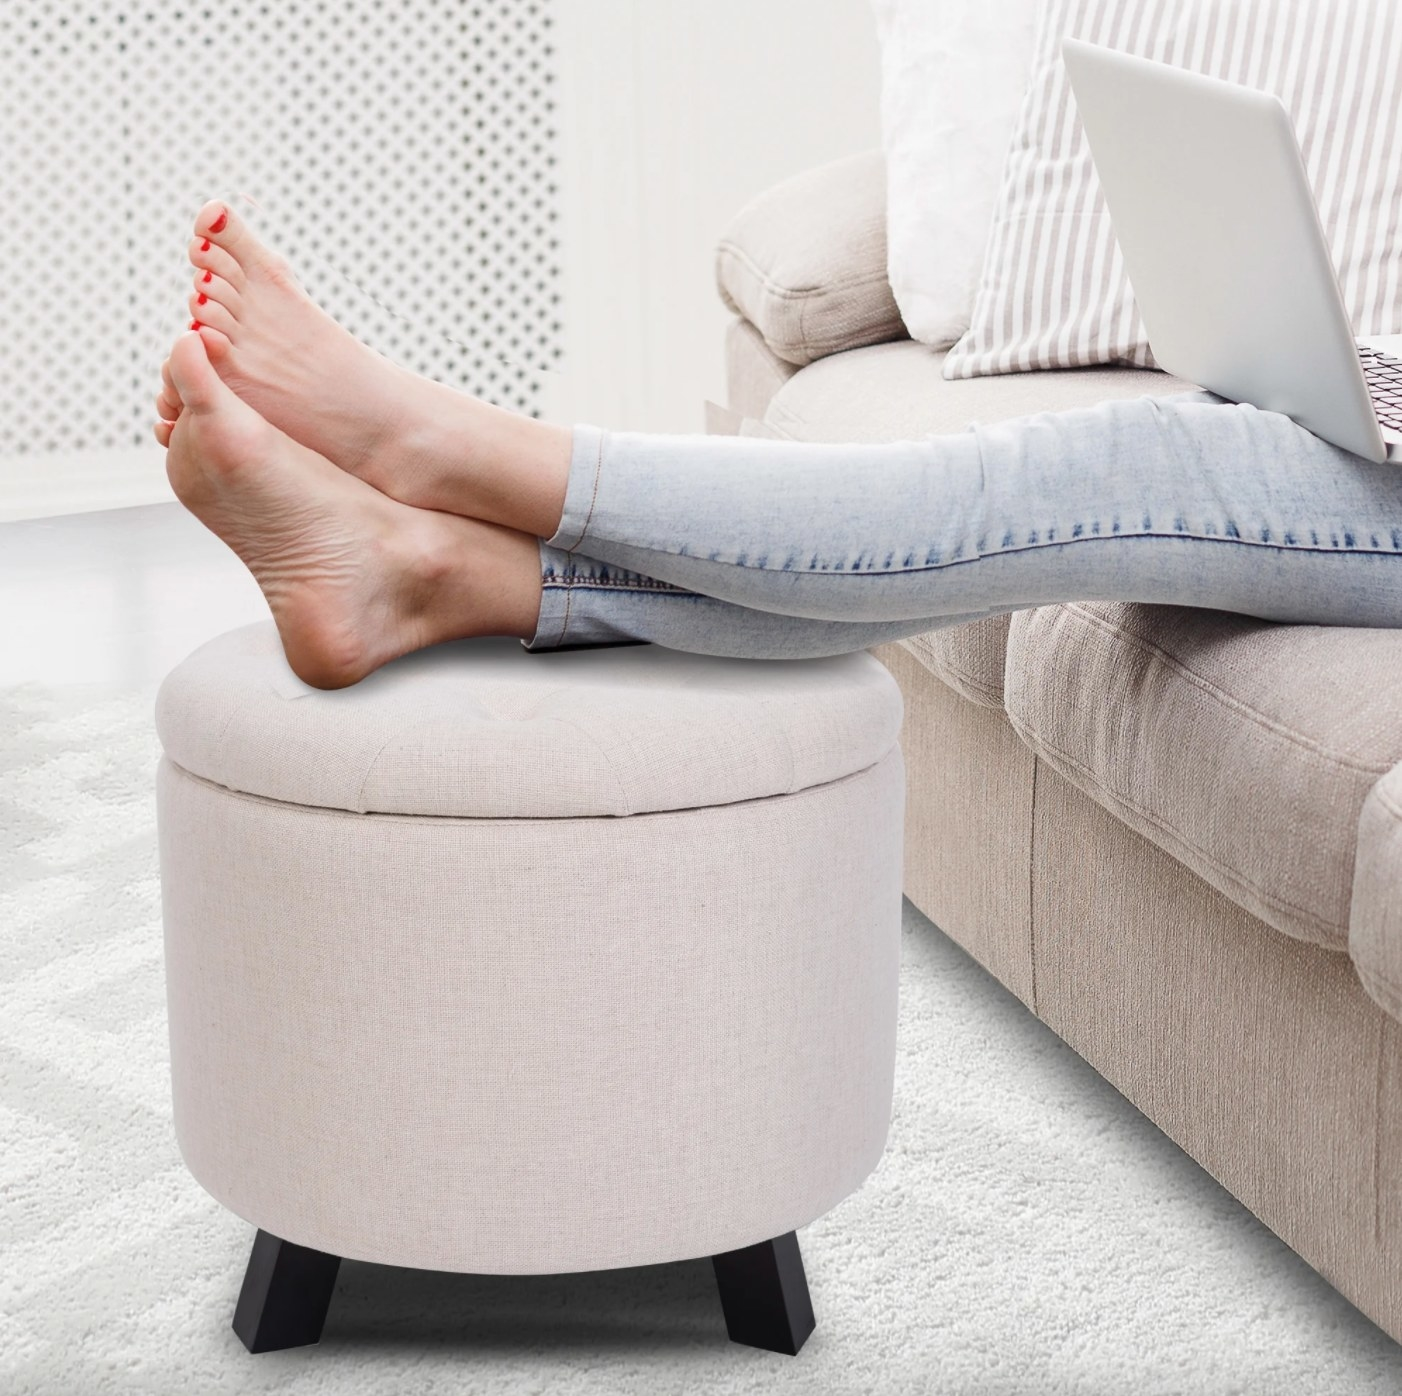 The tufted storage ottoman in beige with legs resting on them